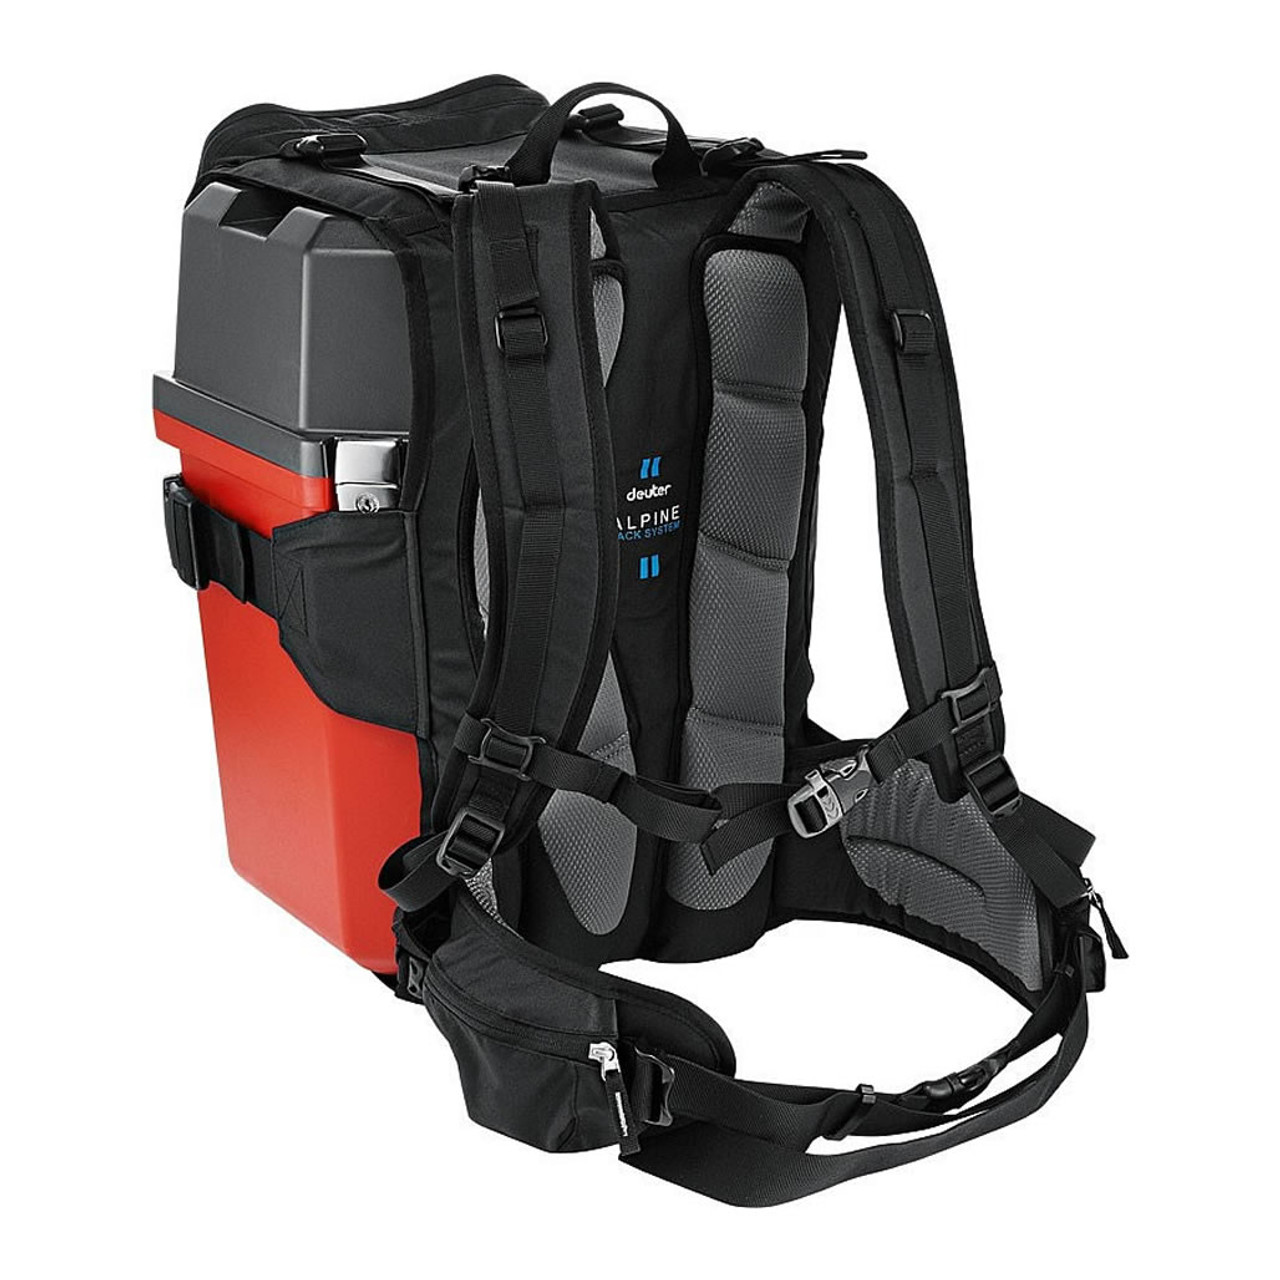 Leica GVP716 Backpack Carrying System